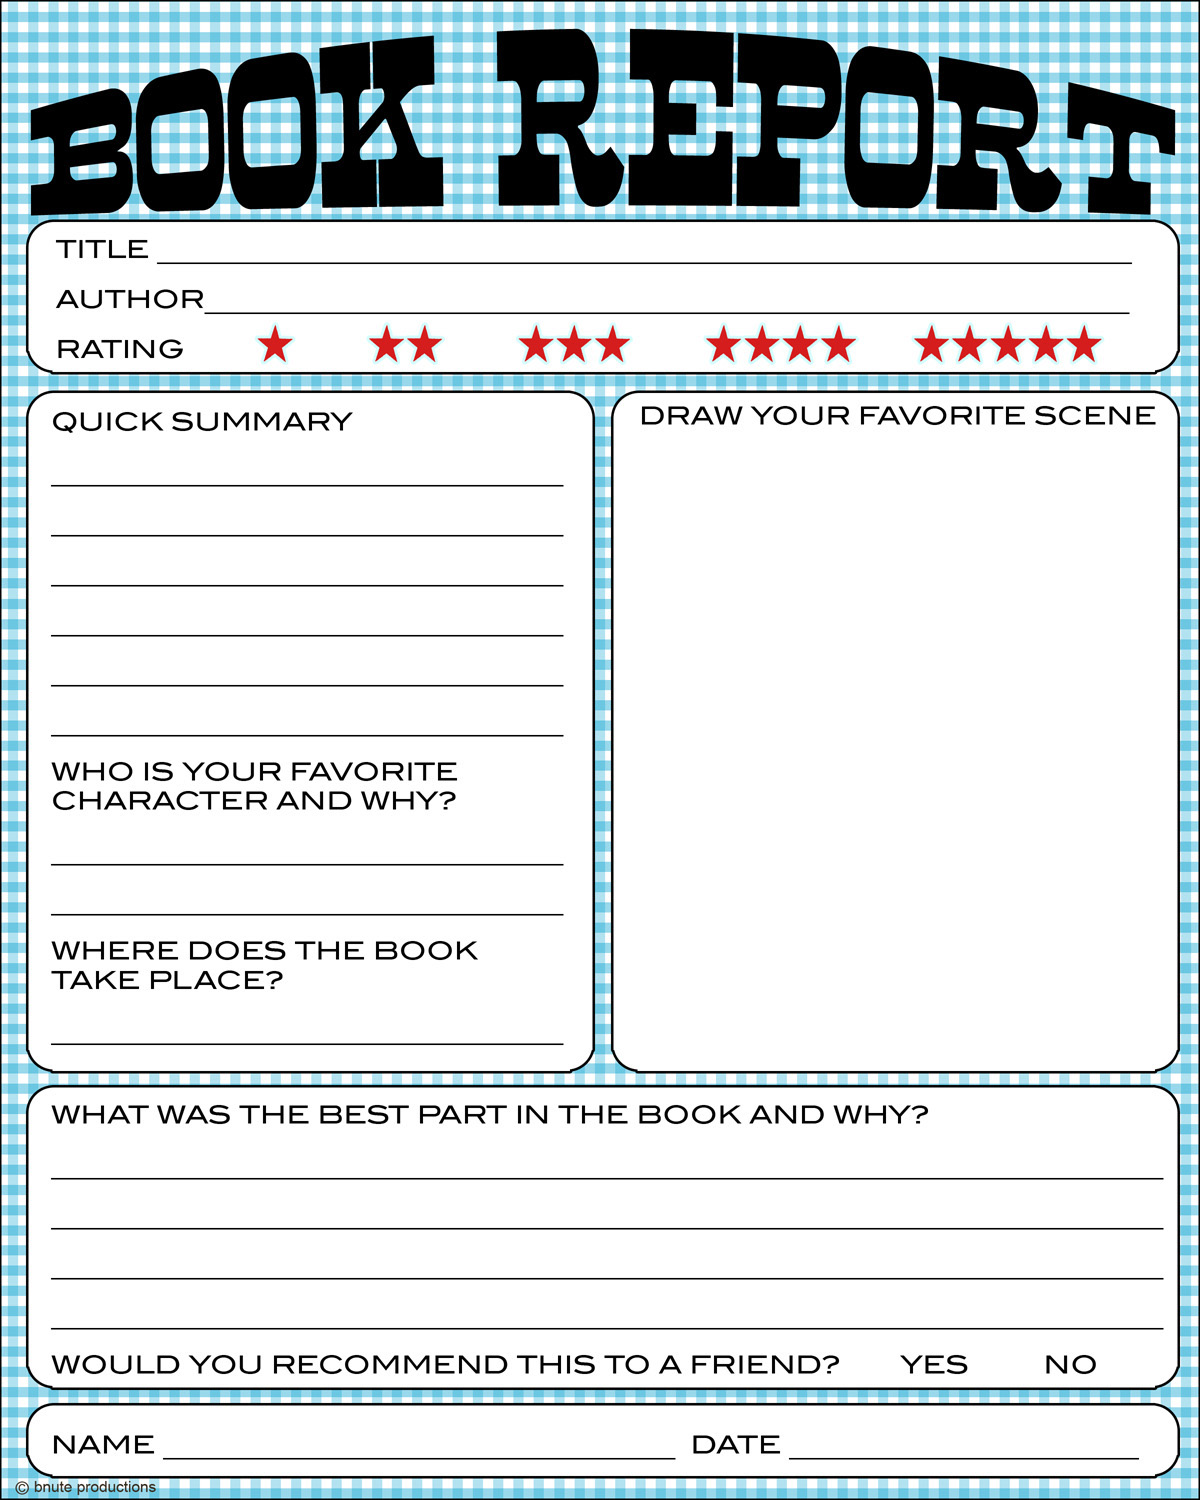 Blank book report forms